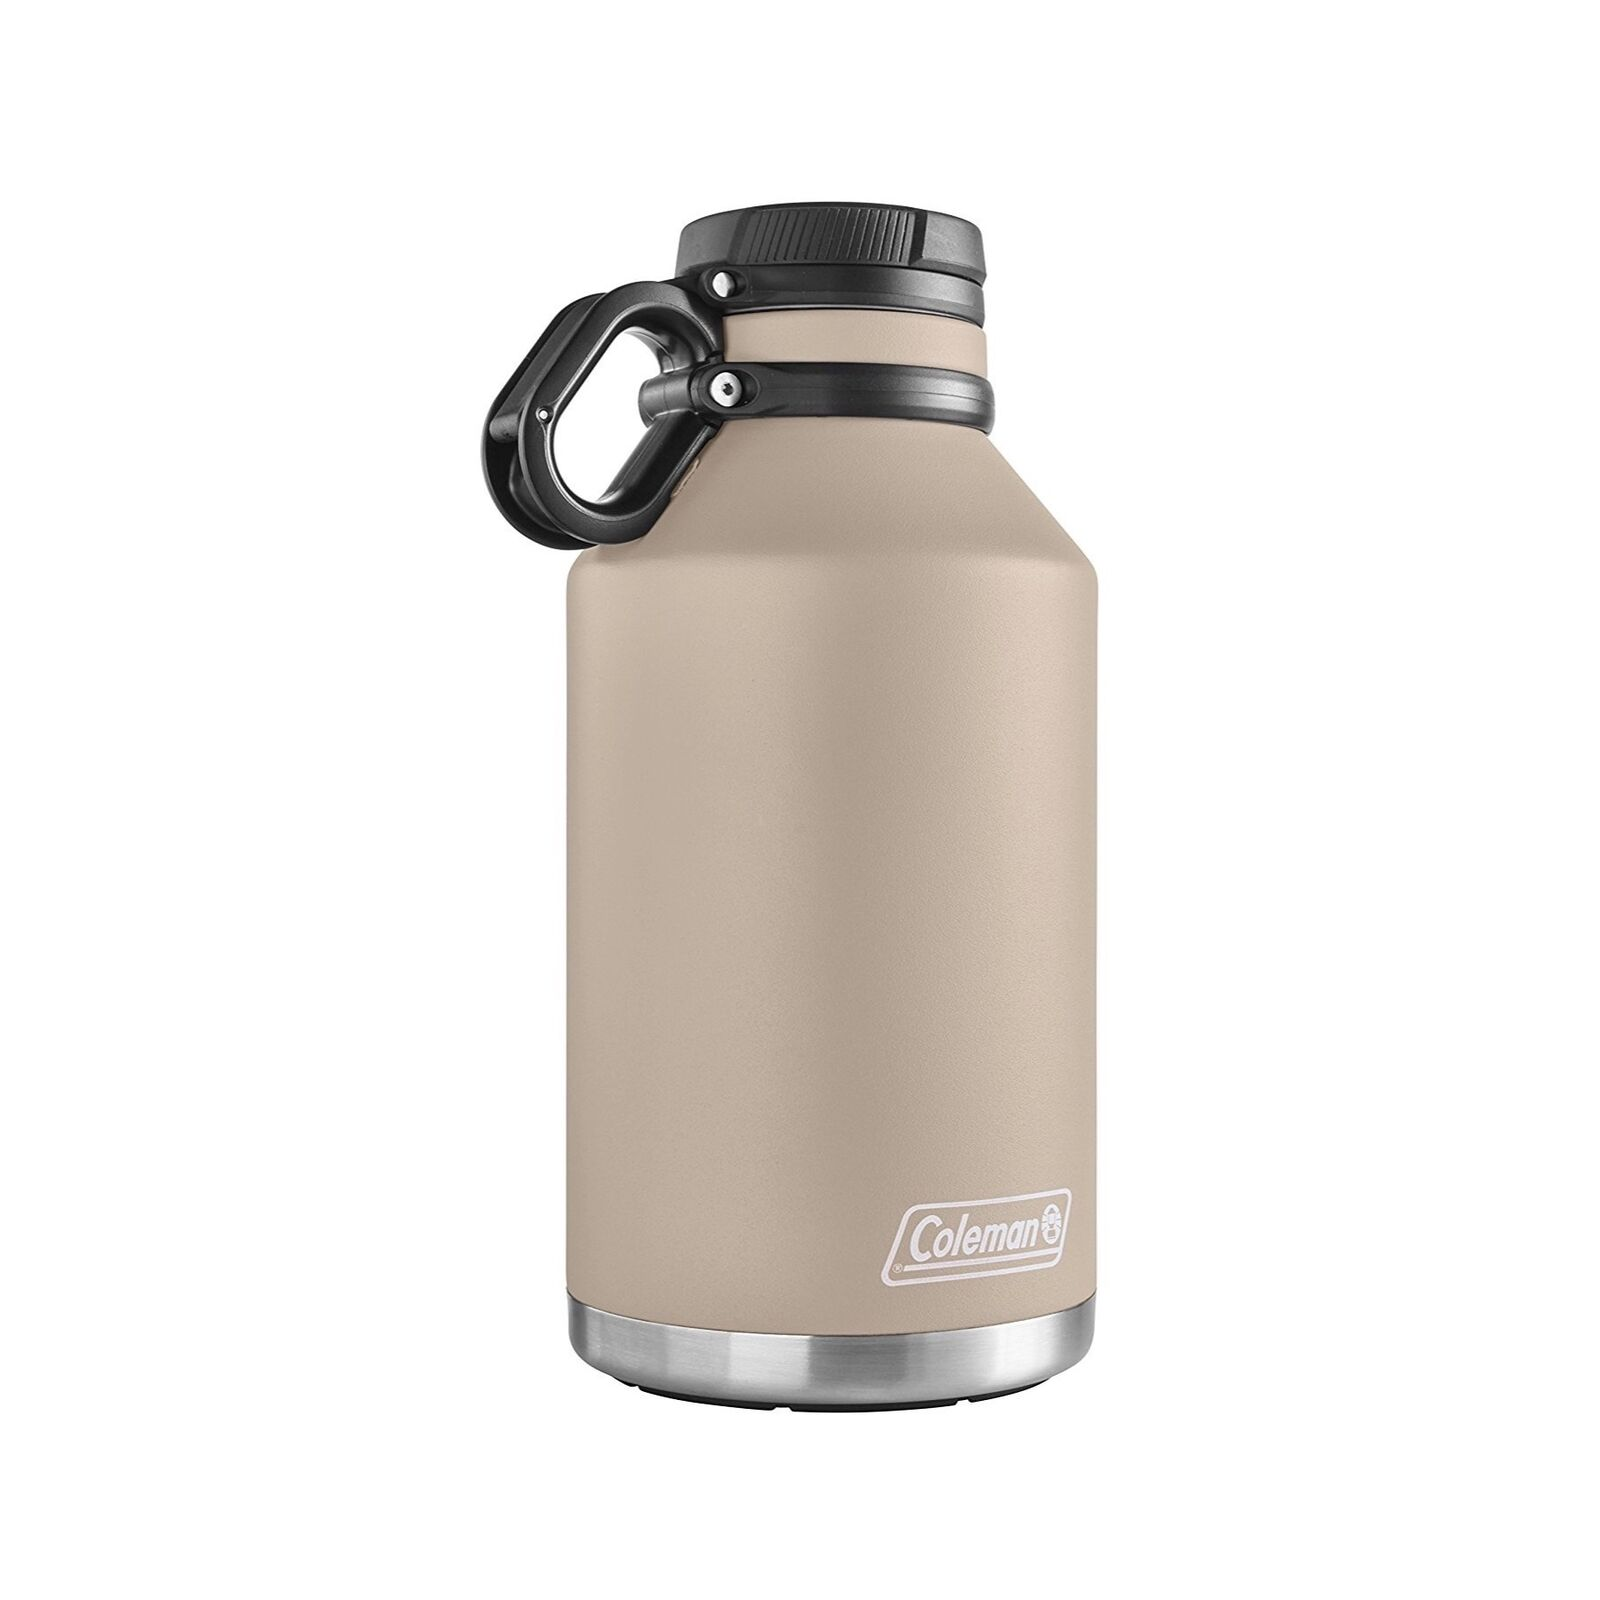 Coleman Stainless Steel Growler 64oz Sandstone Tan Vacuum Insulated Water Bottle